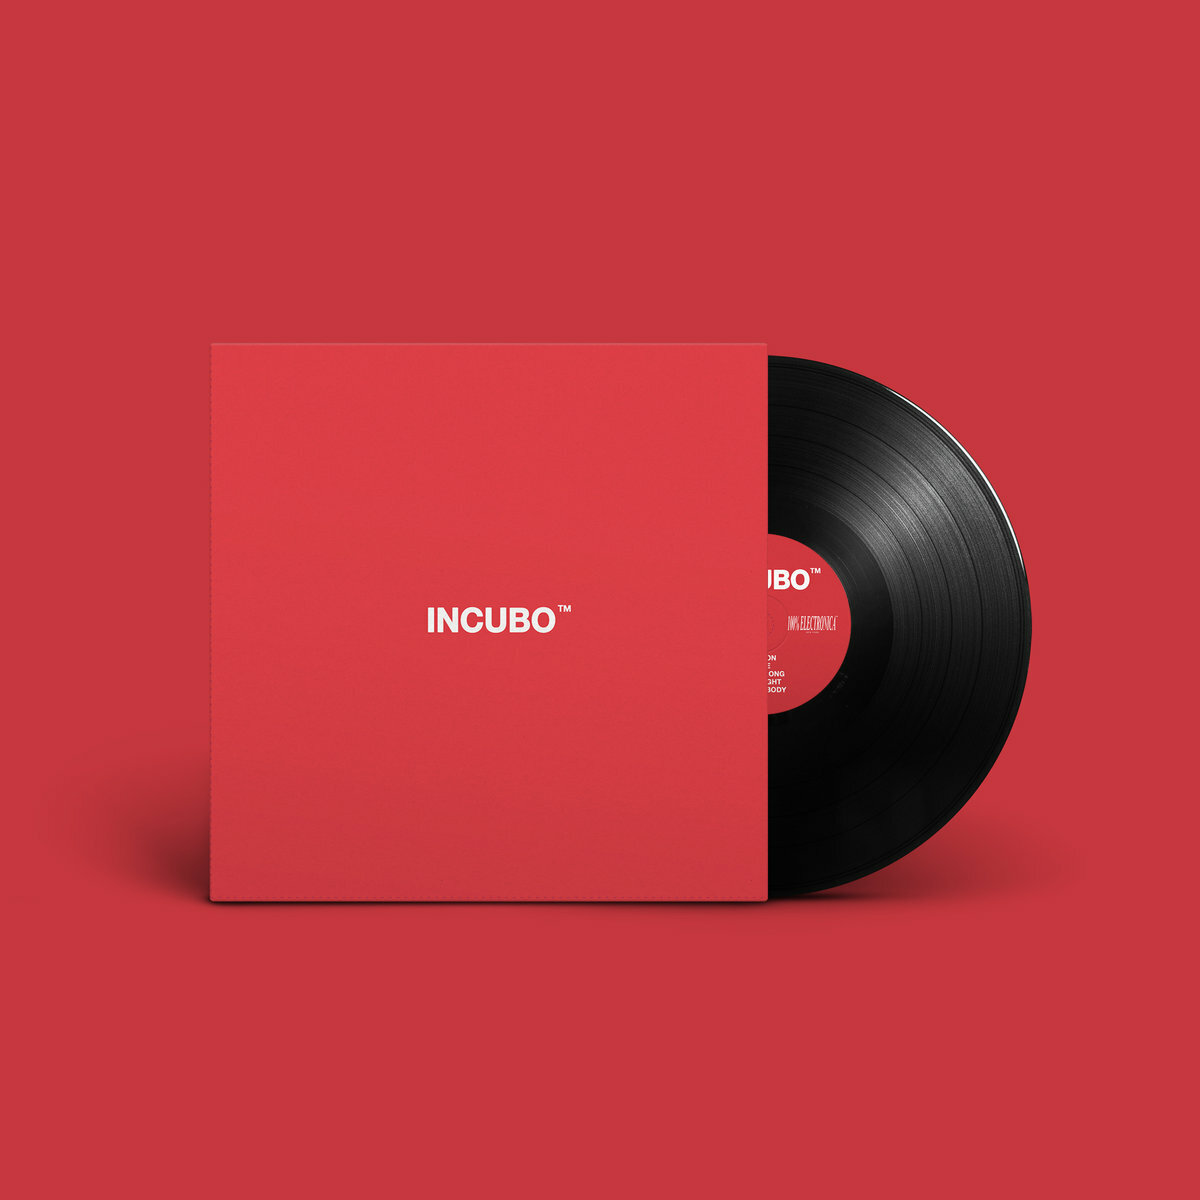 Surfing / INCUBO™(500 Ltd LP)